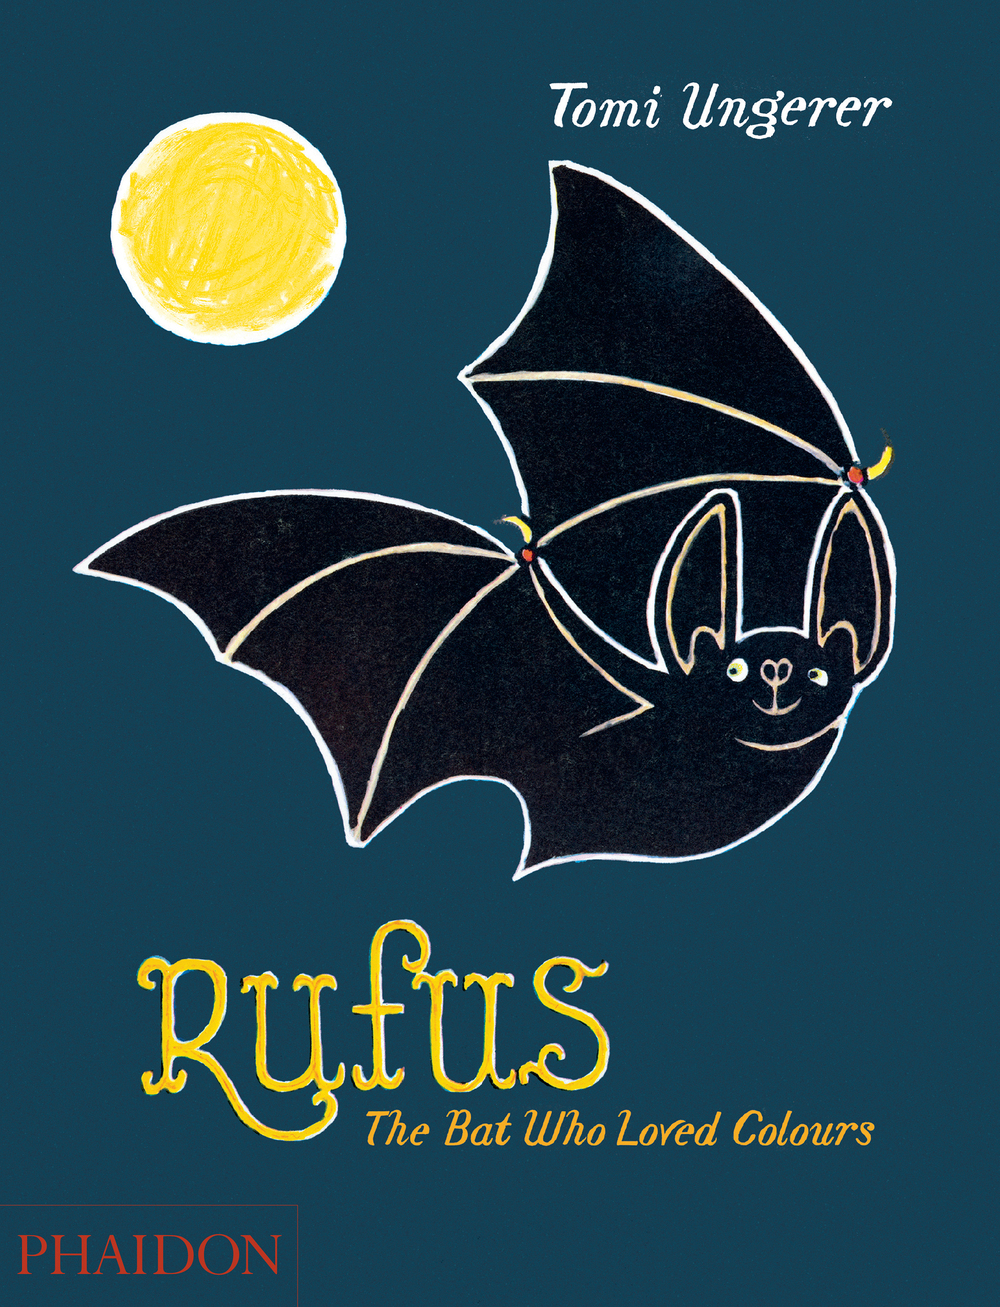 Rufus, The Bat Who Loved Colours by Tomi Ungerer ( Phaidon )   We are huge fans of Tomi Ungerer and his books always feature on our Santa's list. This one, first published in 1961 but re-issued this year, tells the story of a bat who decides to stay up all day and discover what colours the world is made of. A gem.  Get yours  here .